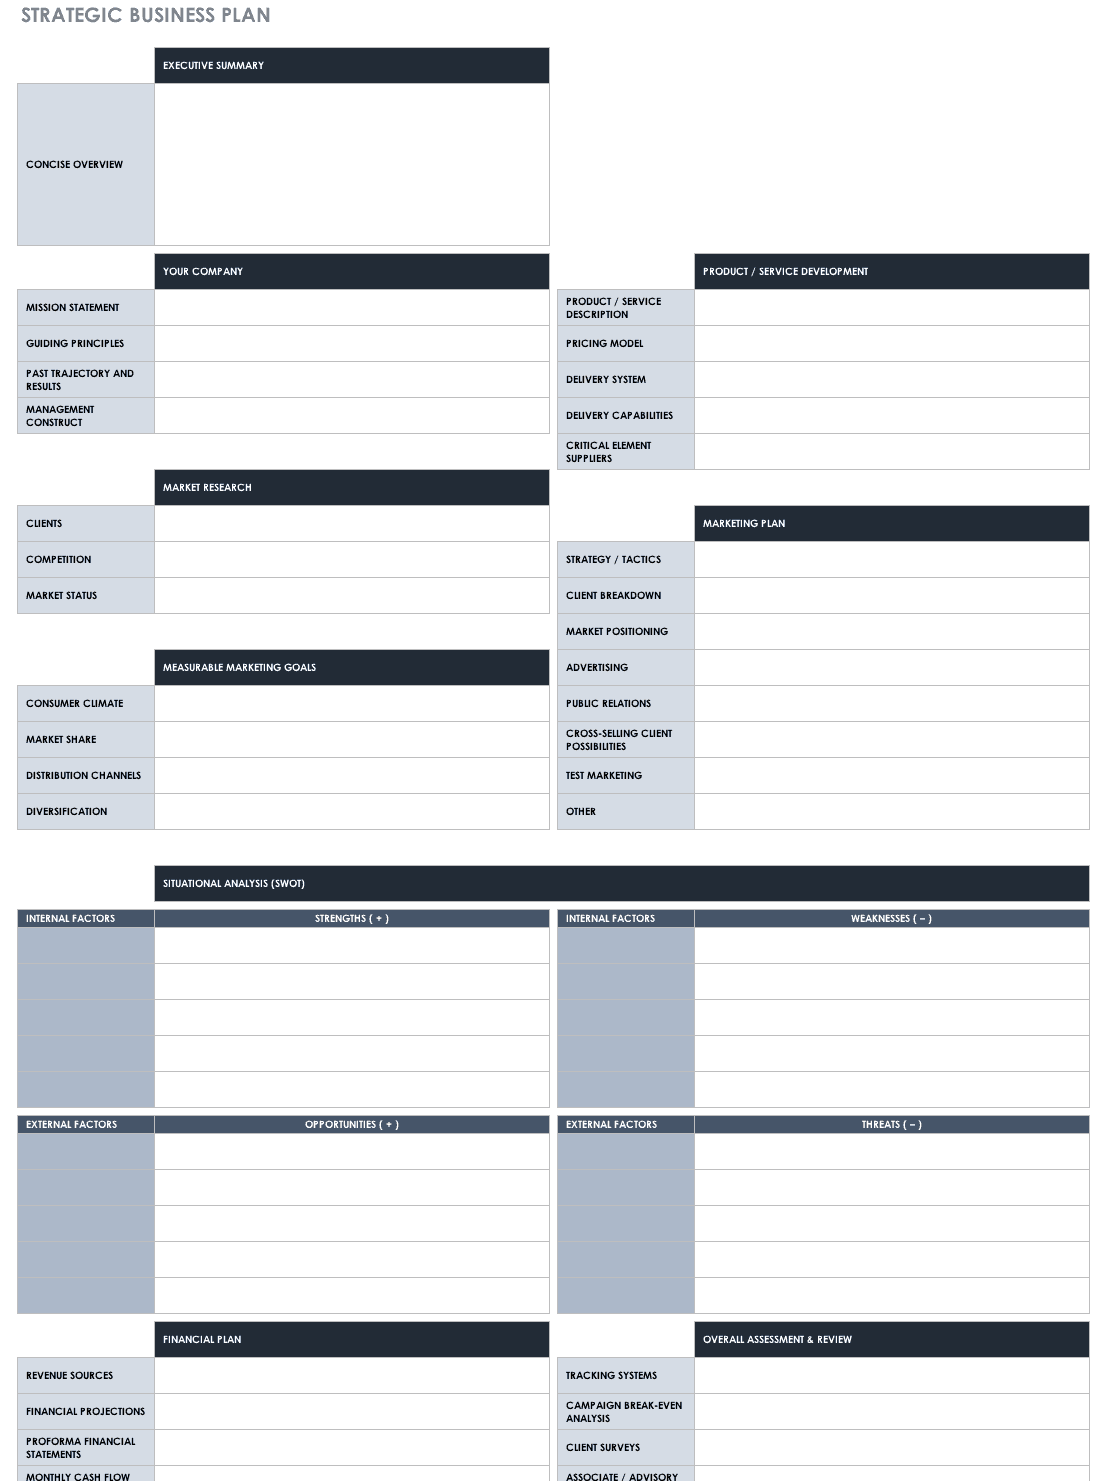 Free strategic planning templates smartsheet strategic business plan template accmission Image collections